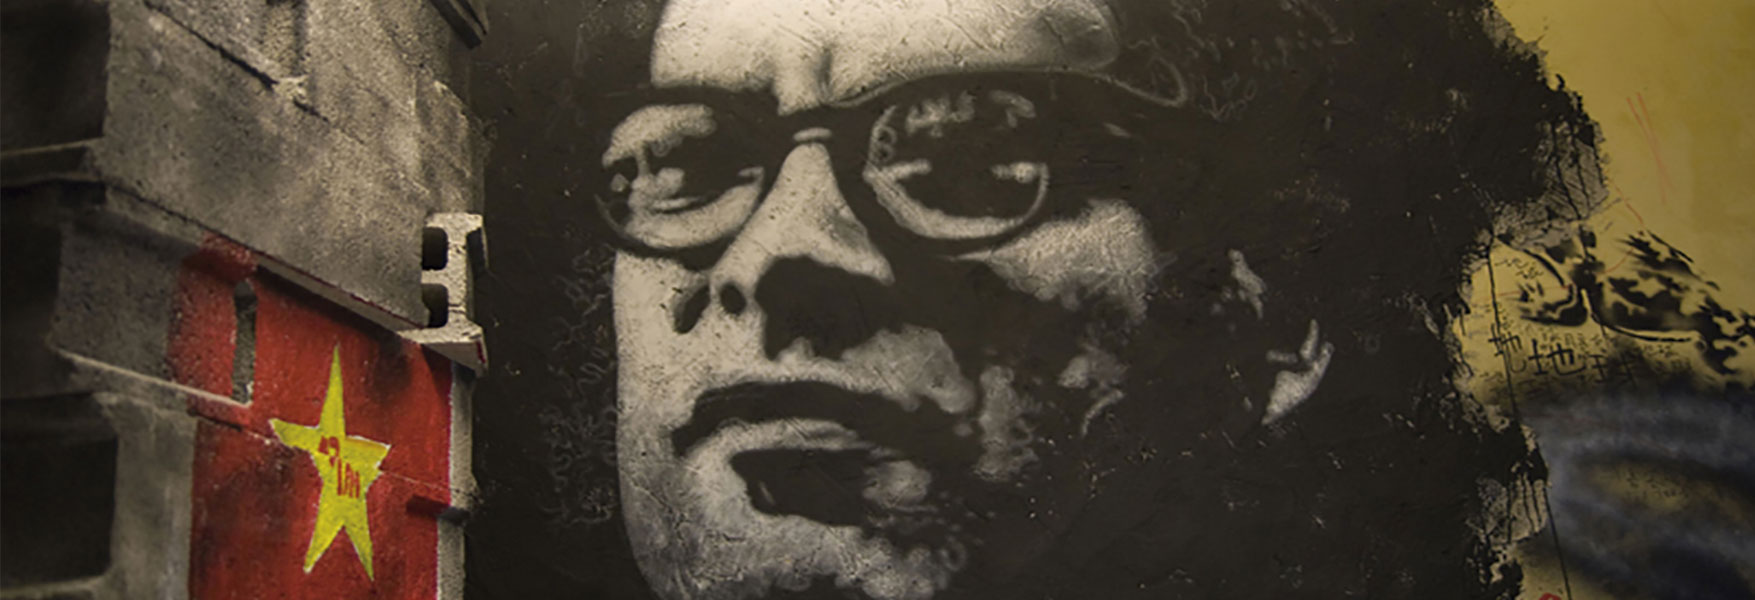 The lesser-known side of Isaac Asimov | OpenMind